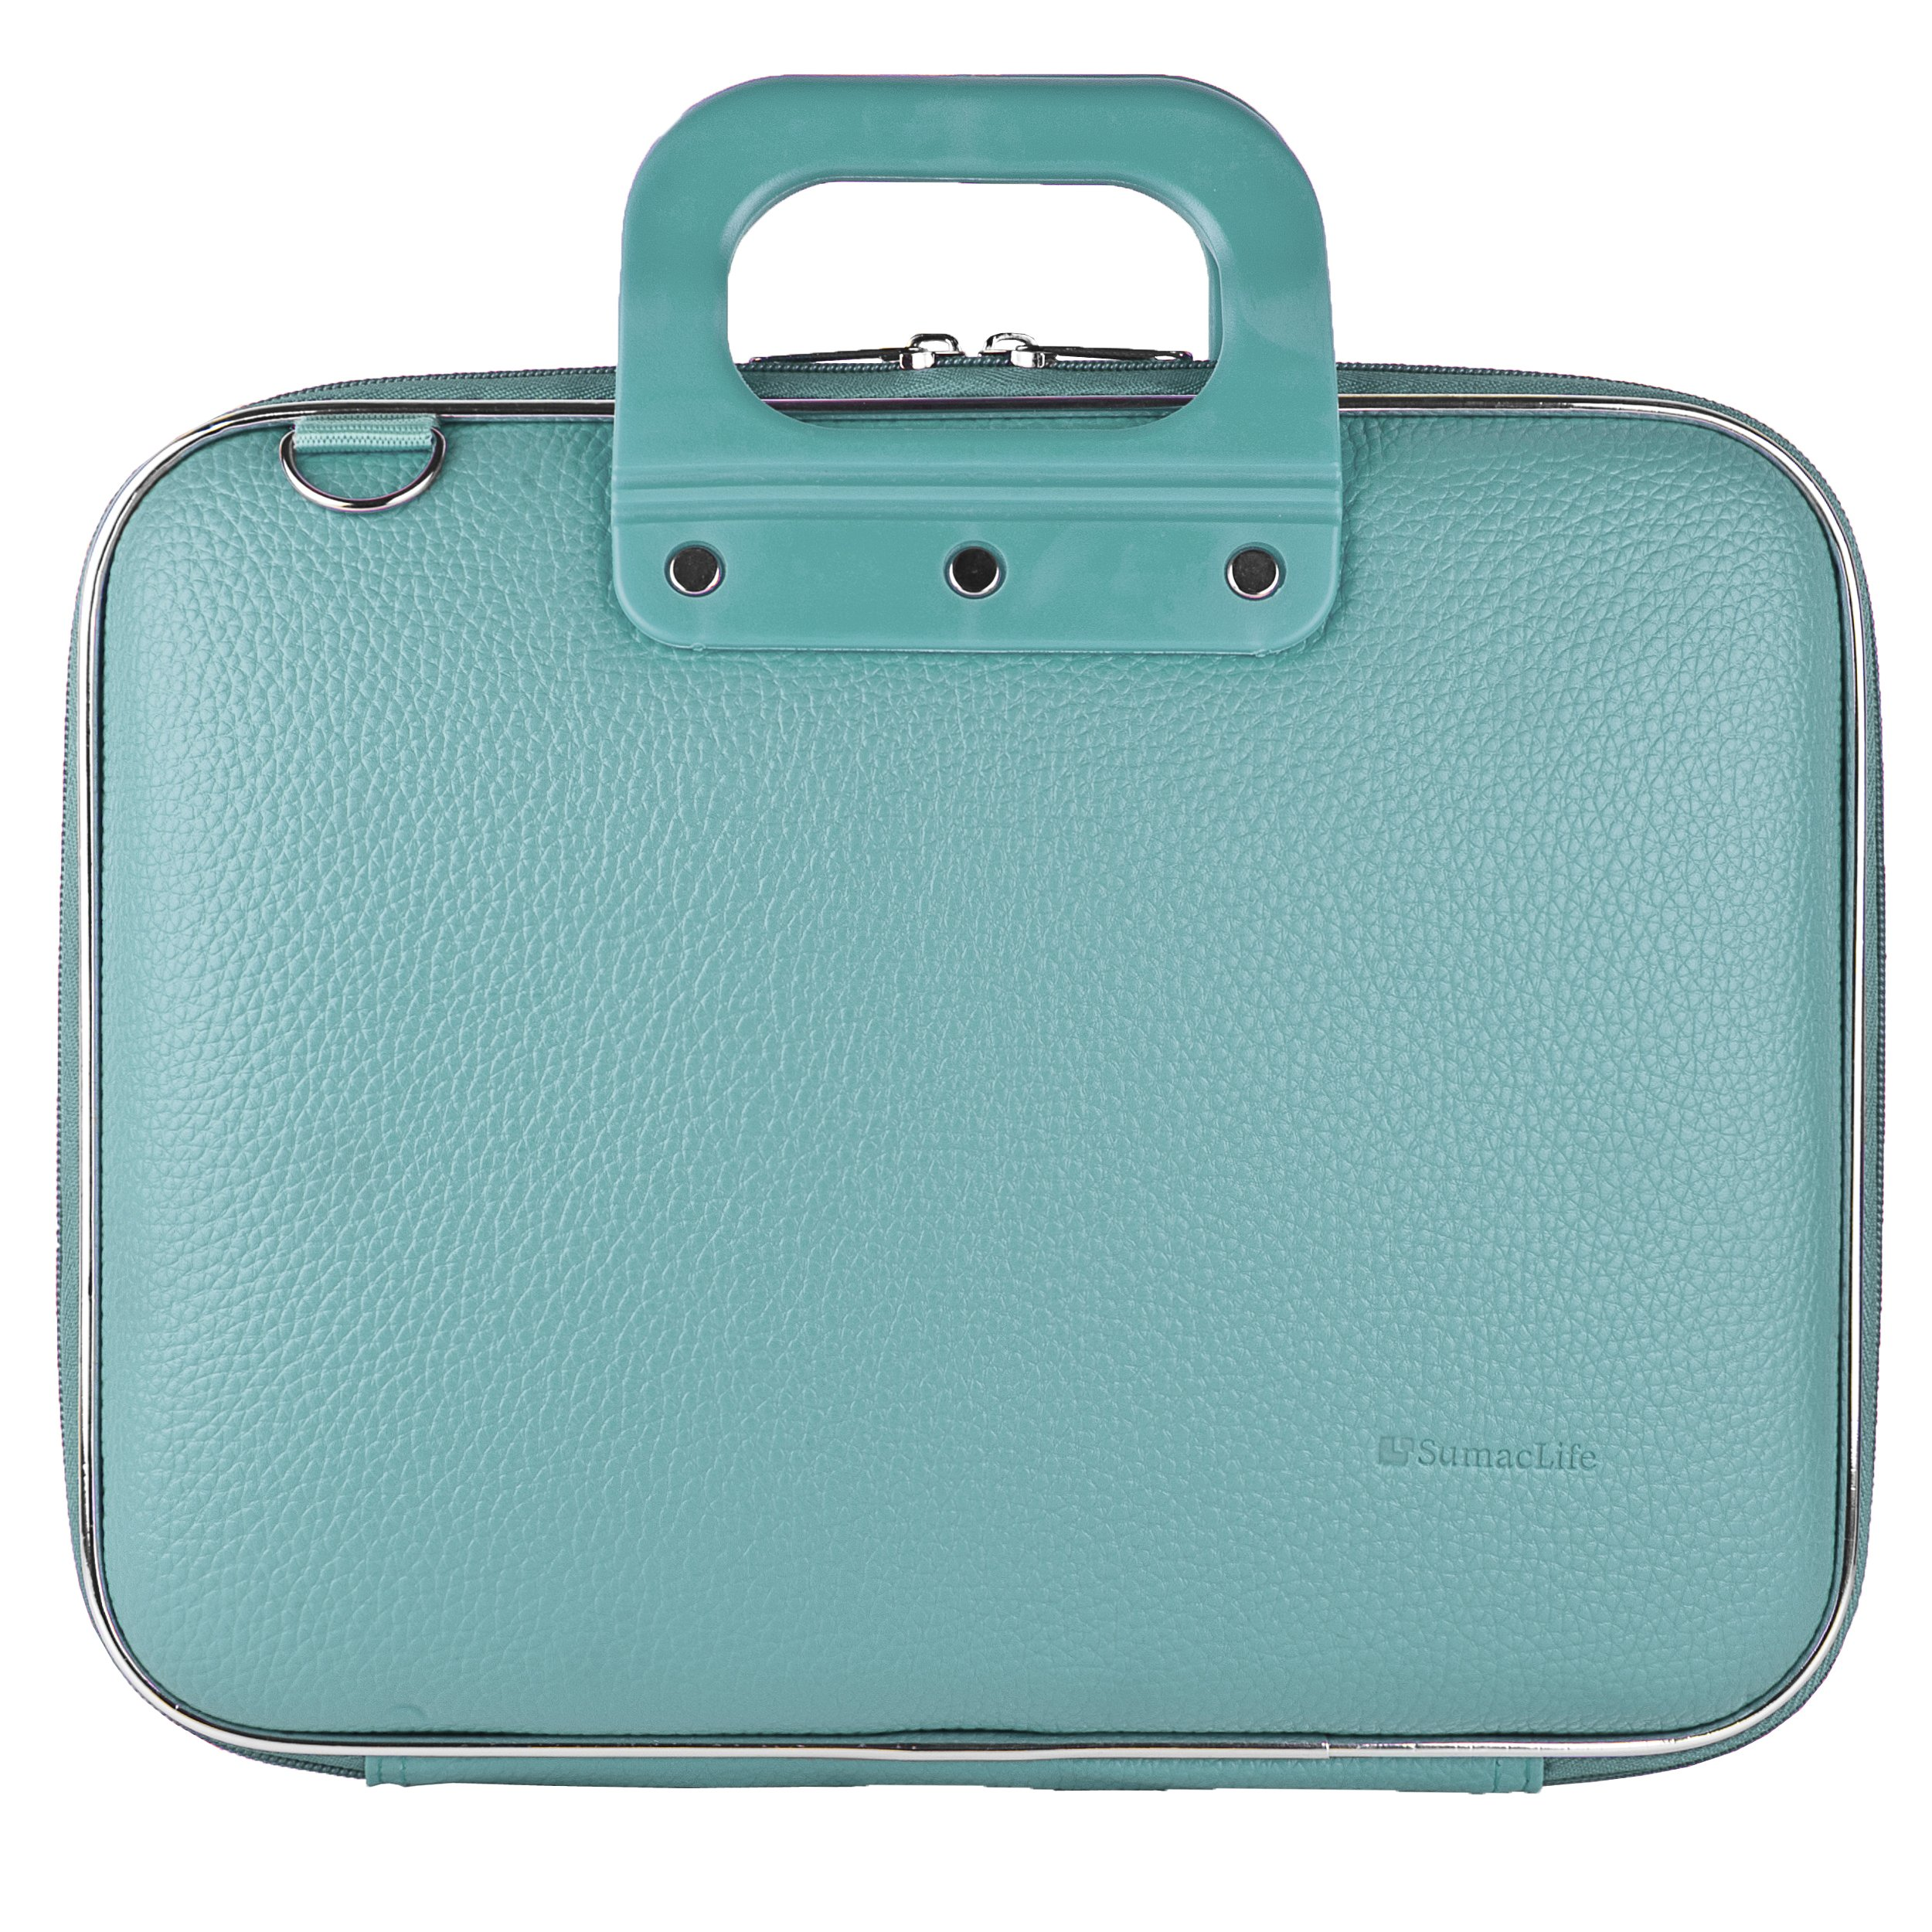 Aqua Shoulder Bag Briefcase for Sylvania 10-Inch/9 Inch Swivel Screen Portable DVD/CD/MP3 Player